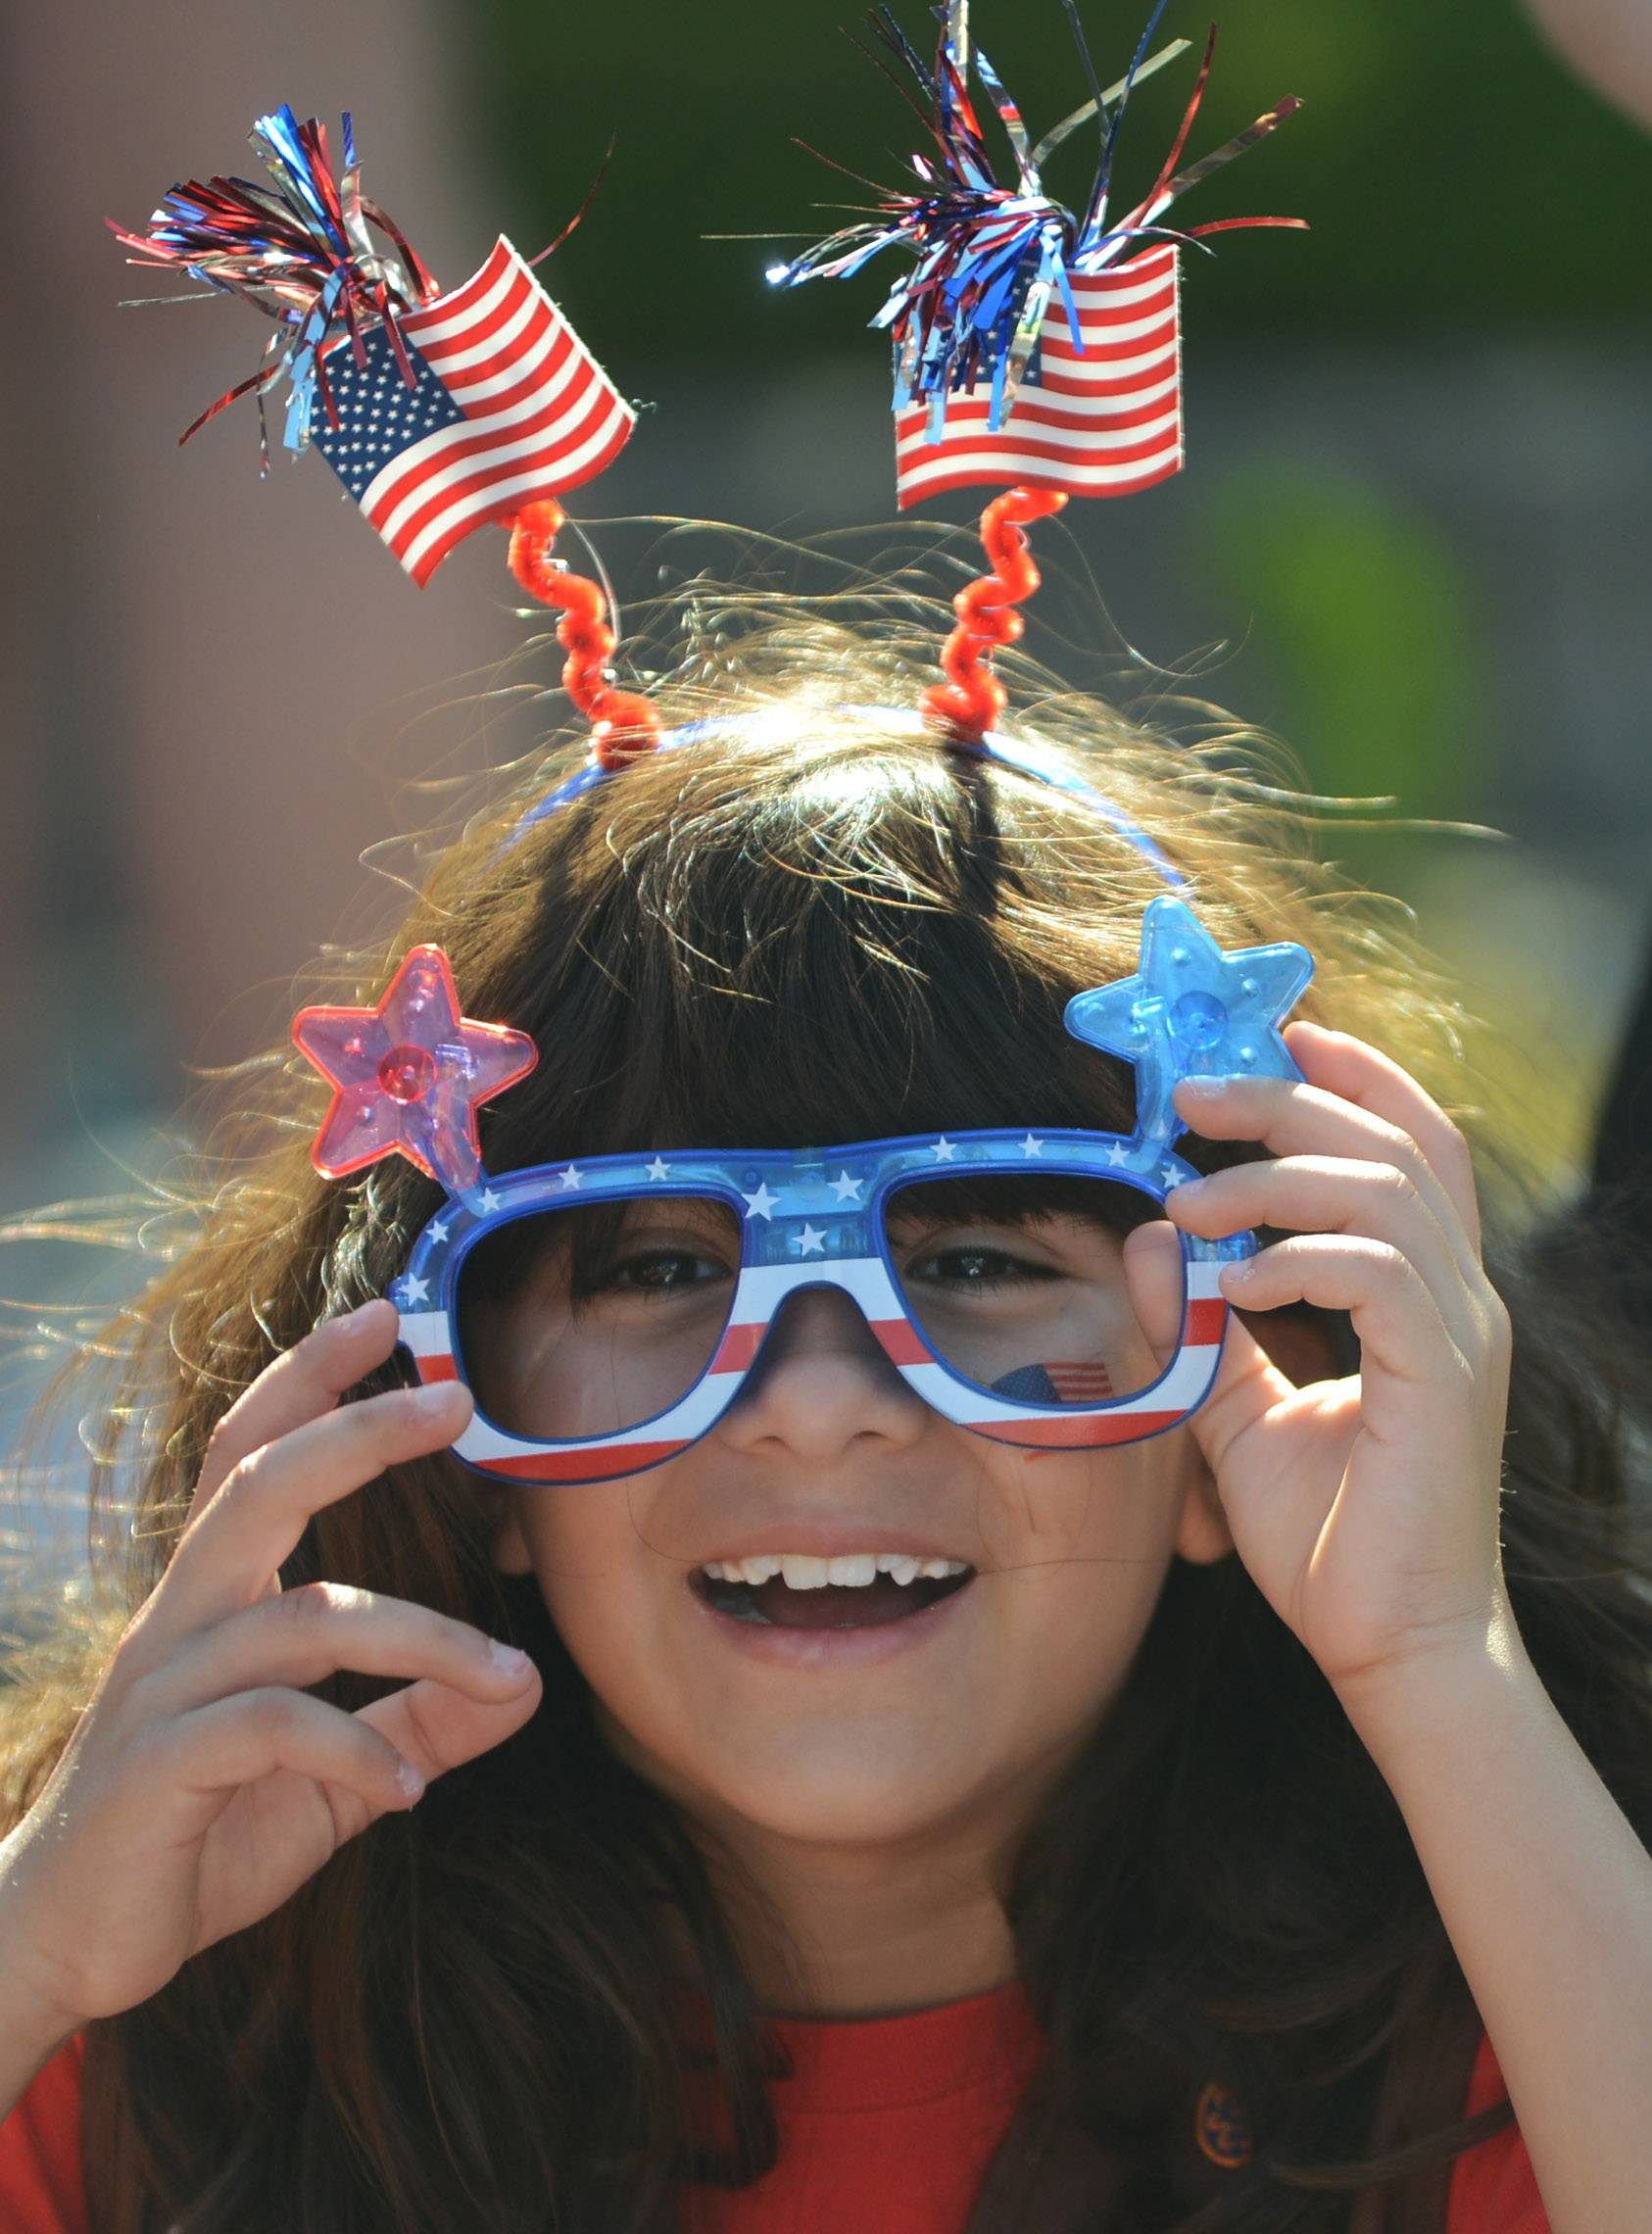 Carrie Adams, 8, of Mundelein, celebrates the Fourth of July in style Friday in Vernon Hills.